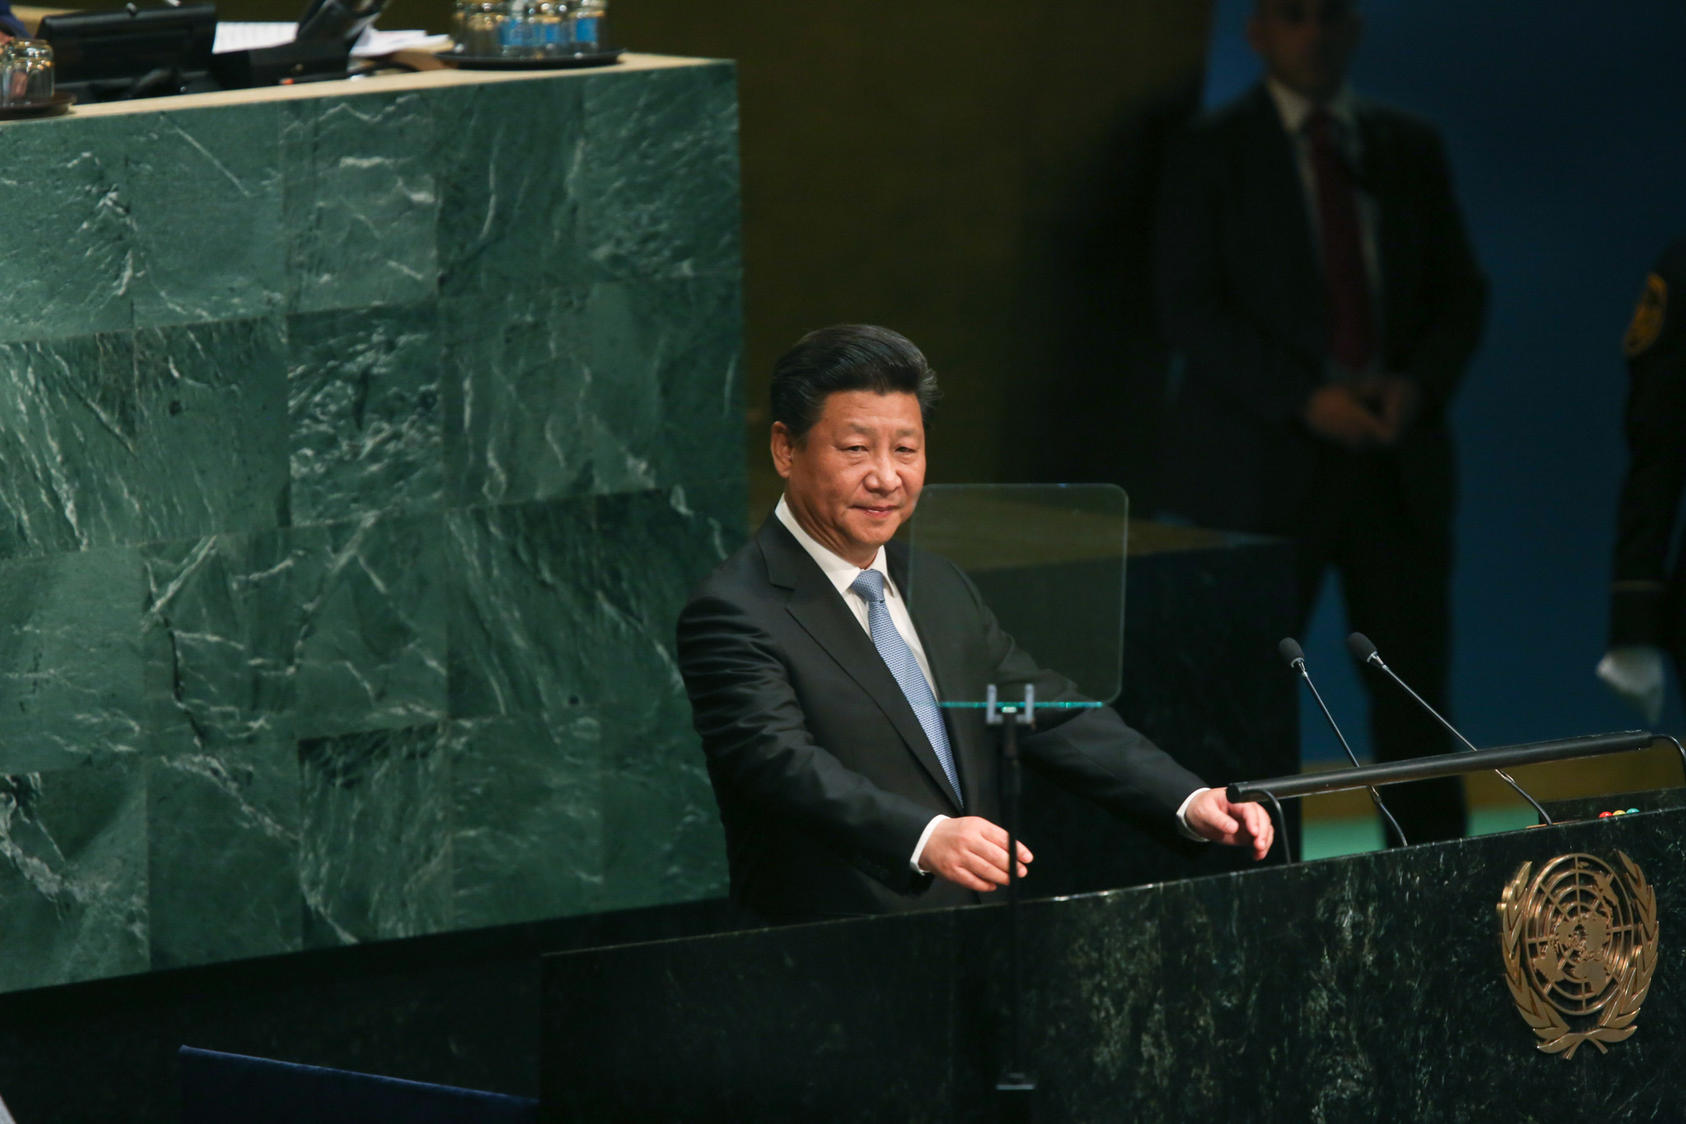 Chinese President Xi Jinping addresses the United Nations General Assembly on its opening day, Sept. 28, 2015.